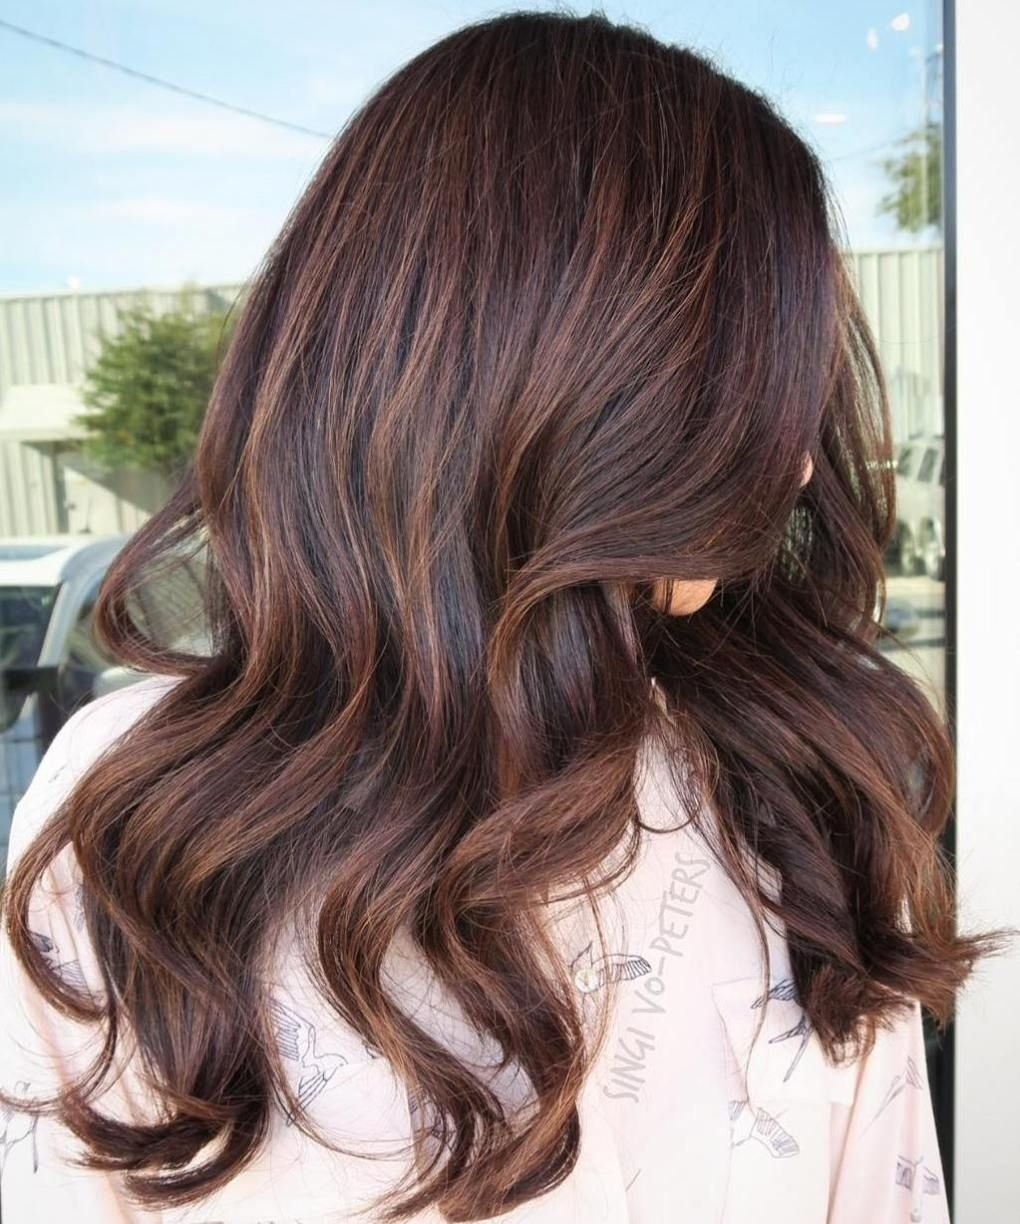 10 Awesome Hair Color Ideas For Brunettes With Highlights 60 chocolate brown hair color ideas for brunettes subtle 1